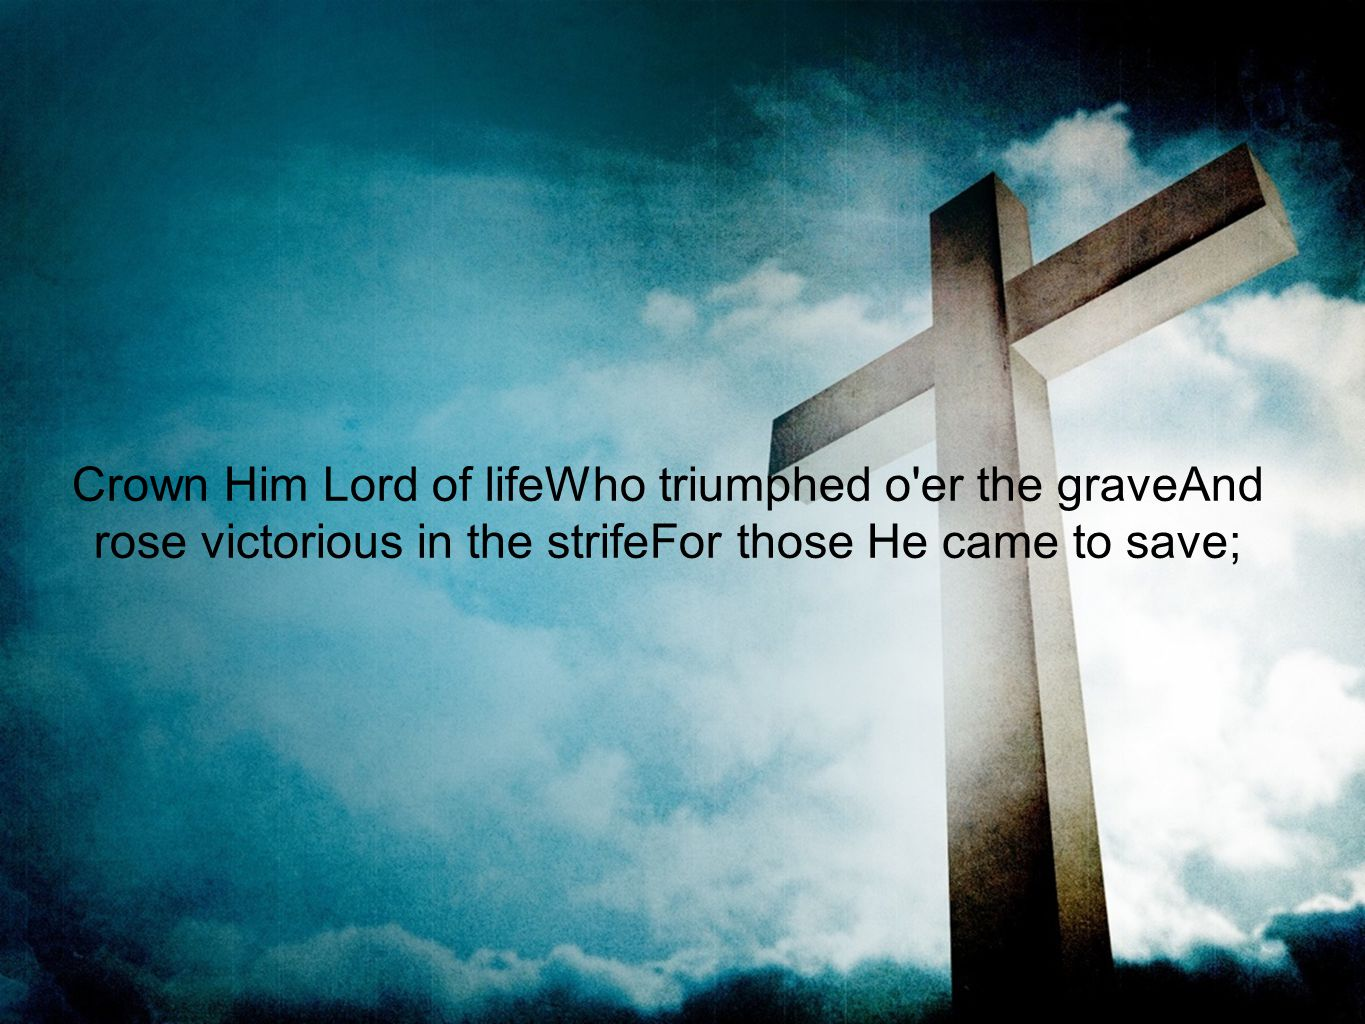 Crown Him Lord of lifeWho triumphed o er the graveAnd rose victorious in the strifeFor those He came to save;